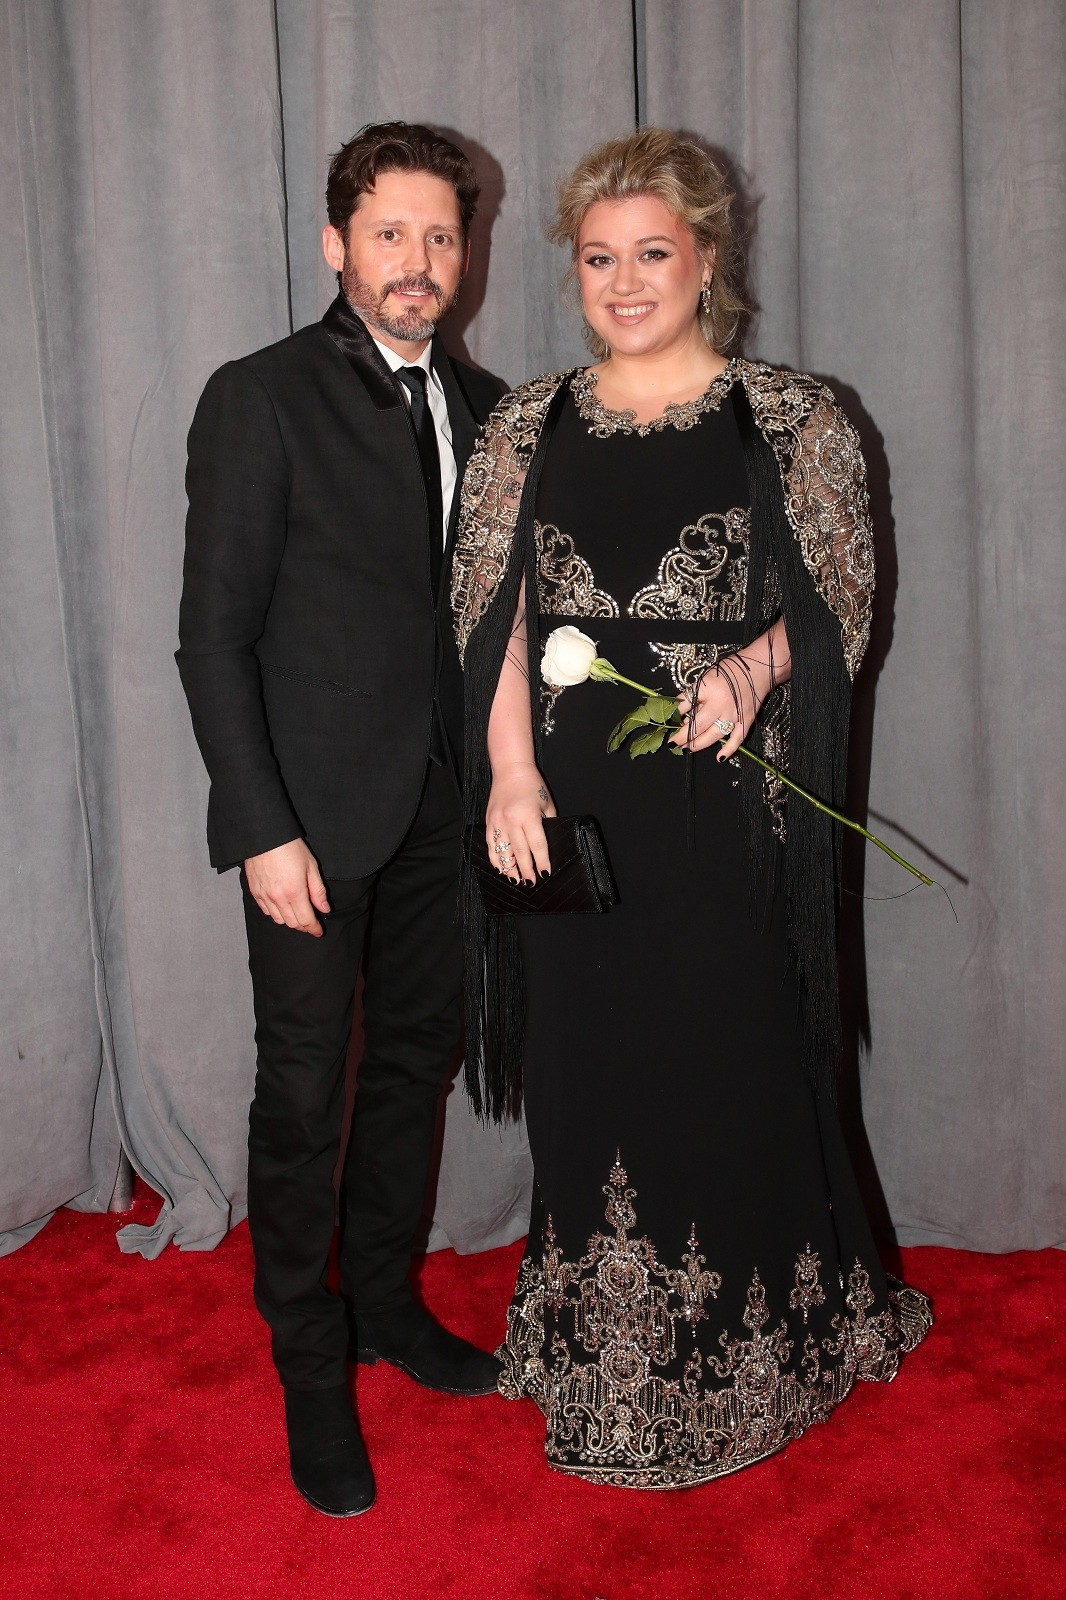 Brandon Blackstock (L) and recording artist Kelly Clarkson attend the 60th Annual Grammy Awards at Madison Square Garden on January 28, 2018 in New York City.